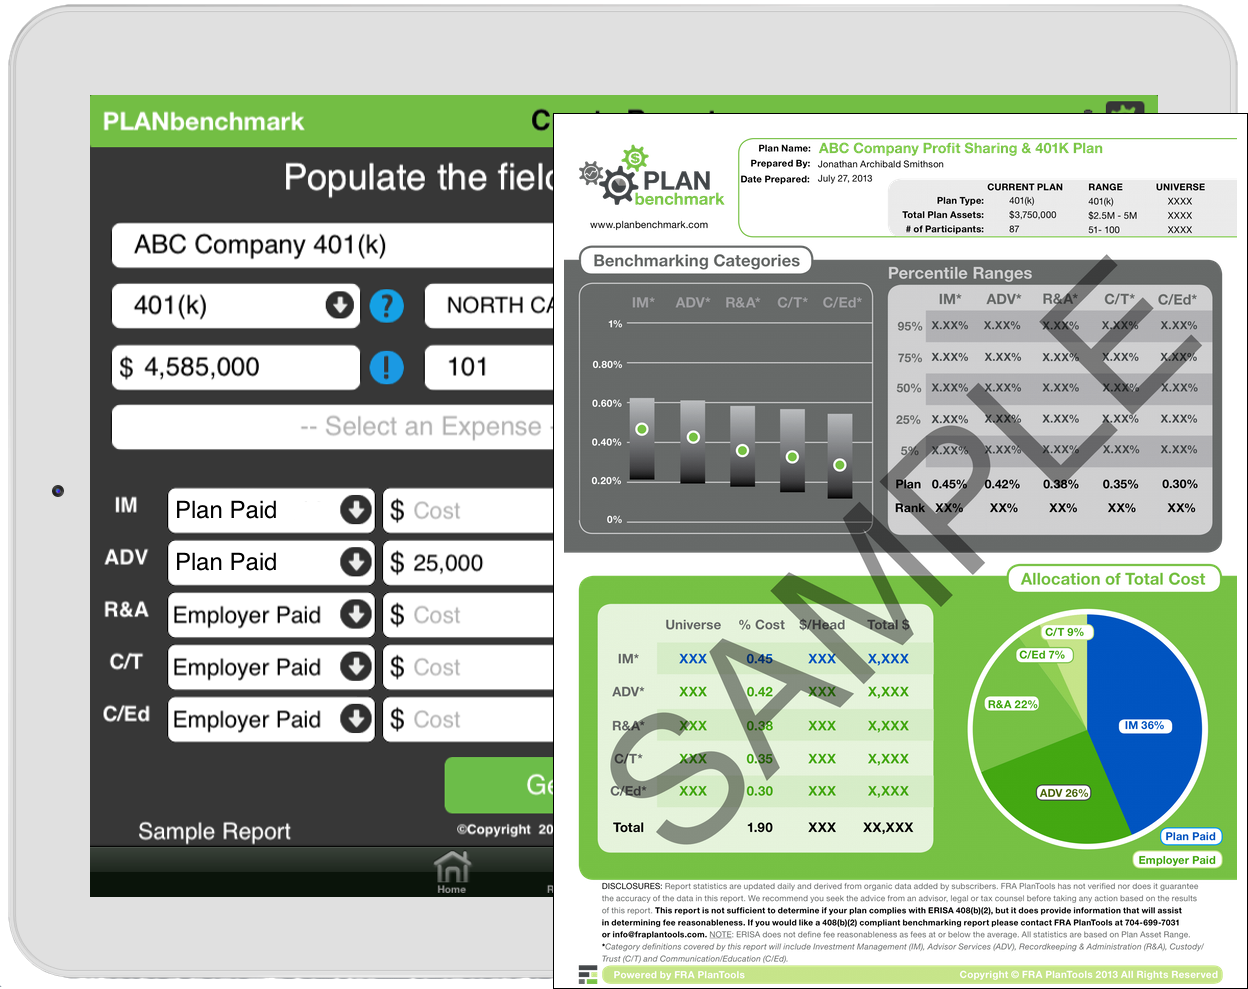 Plan Benchmark Dashboard